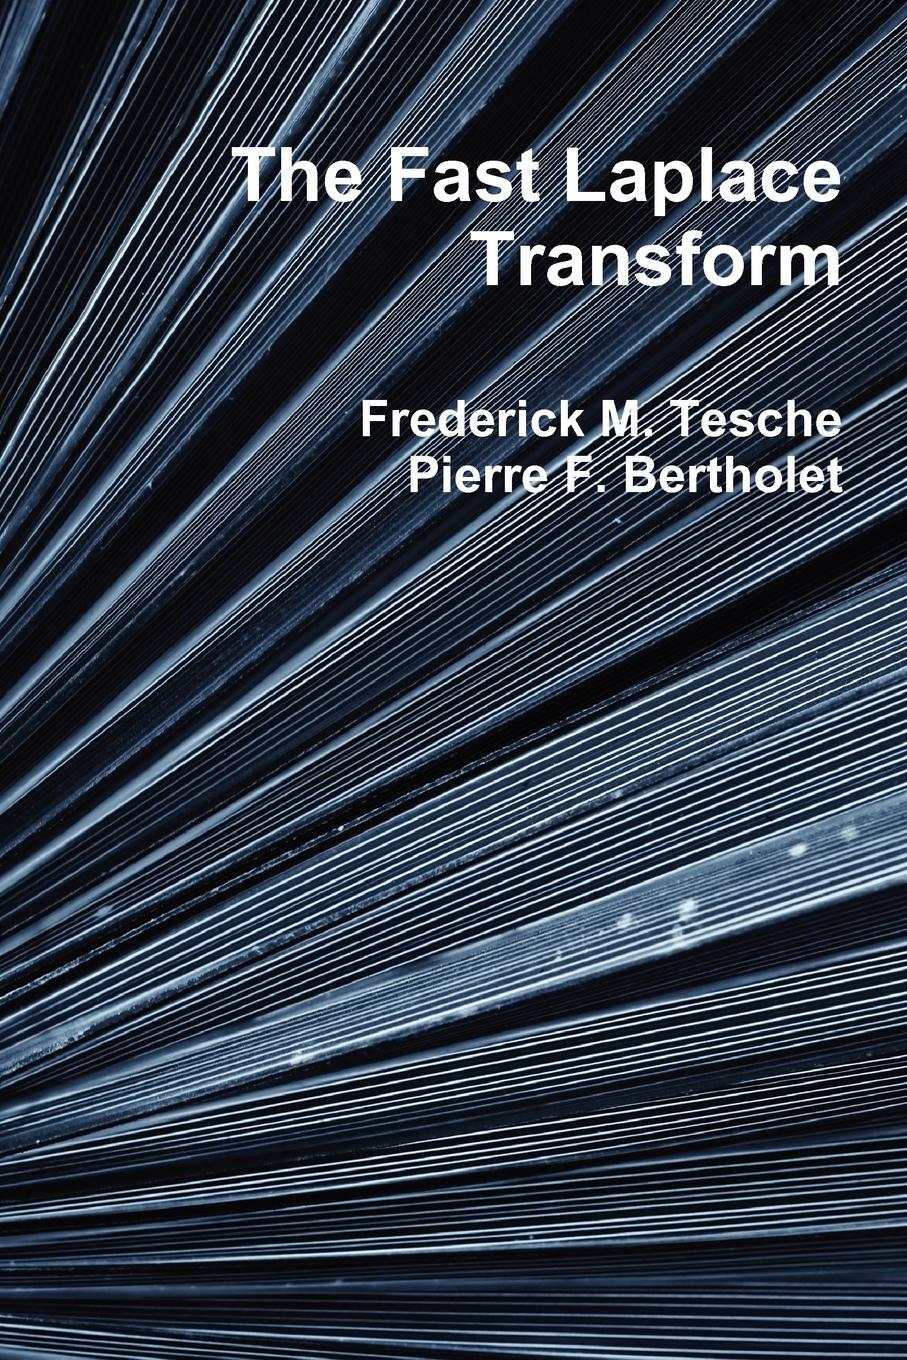 Frederick M. Tesche The Fast Laplace Transform amy lyman the trustworthy leader leveraging the power of trust to transform your organization